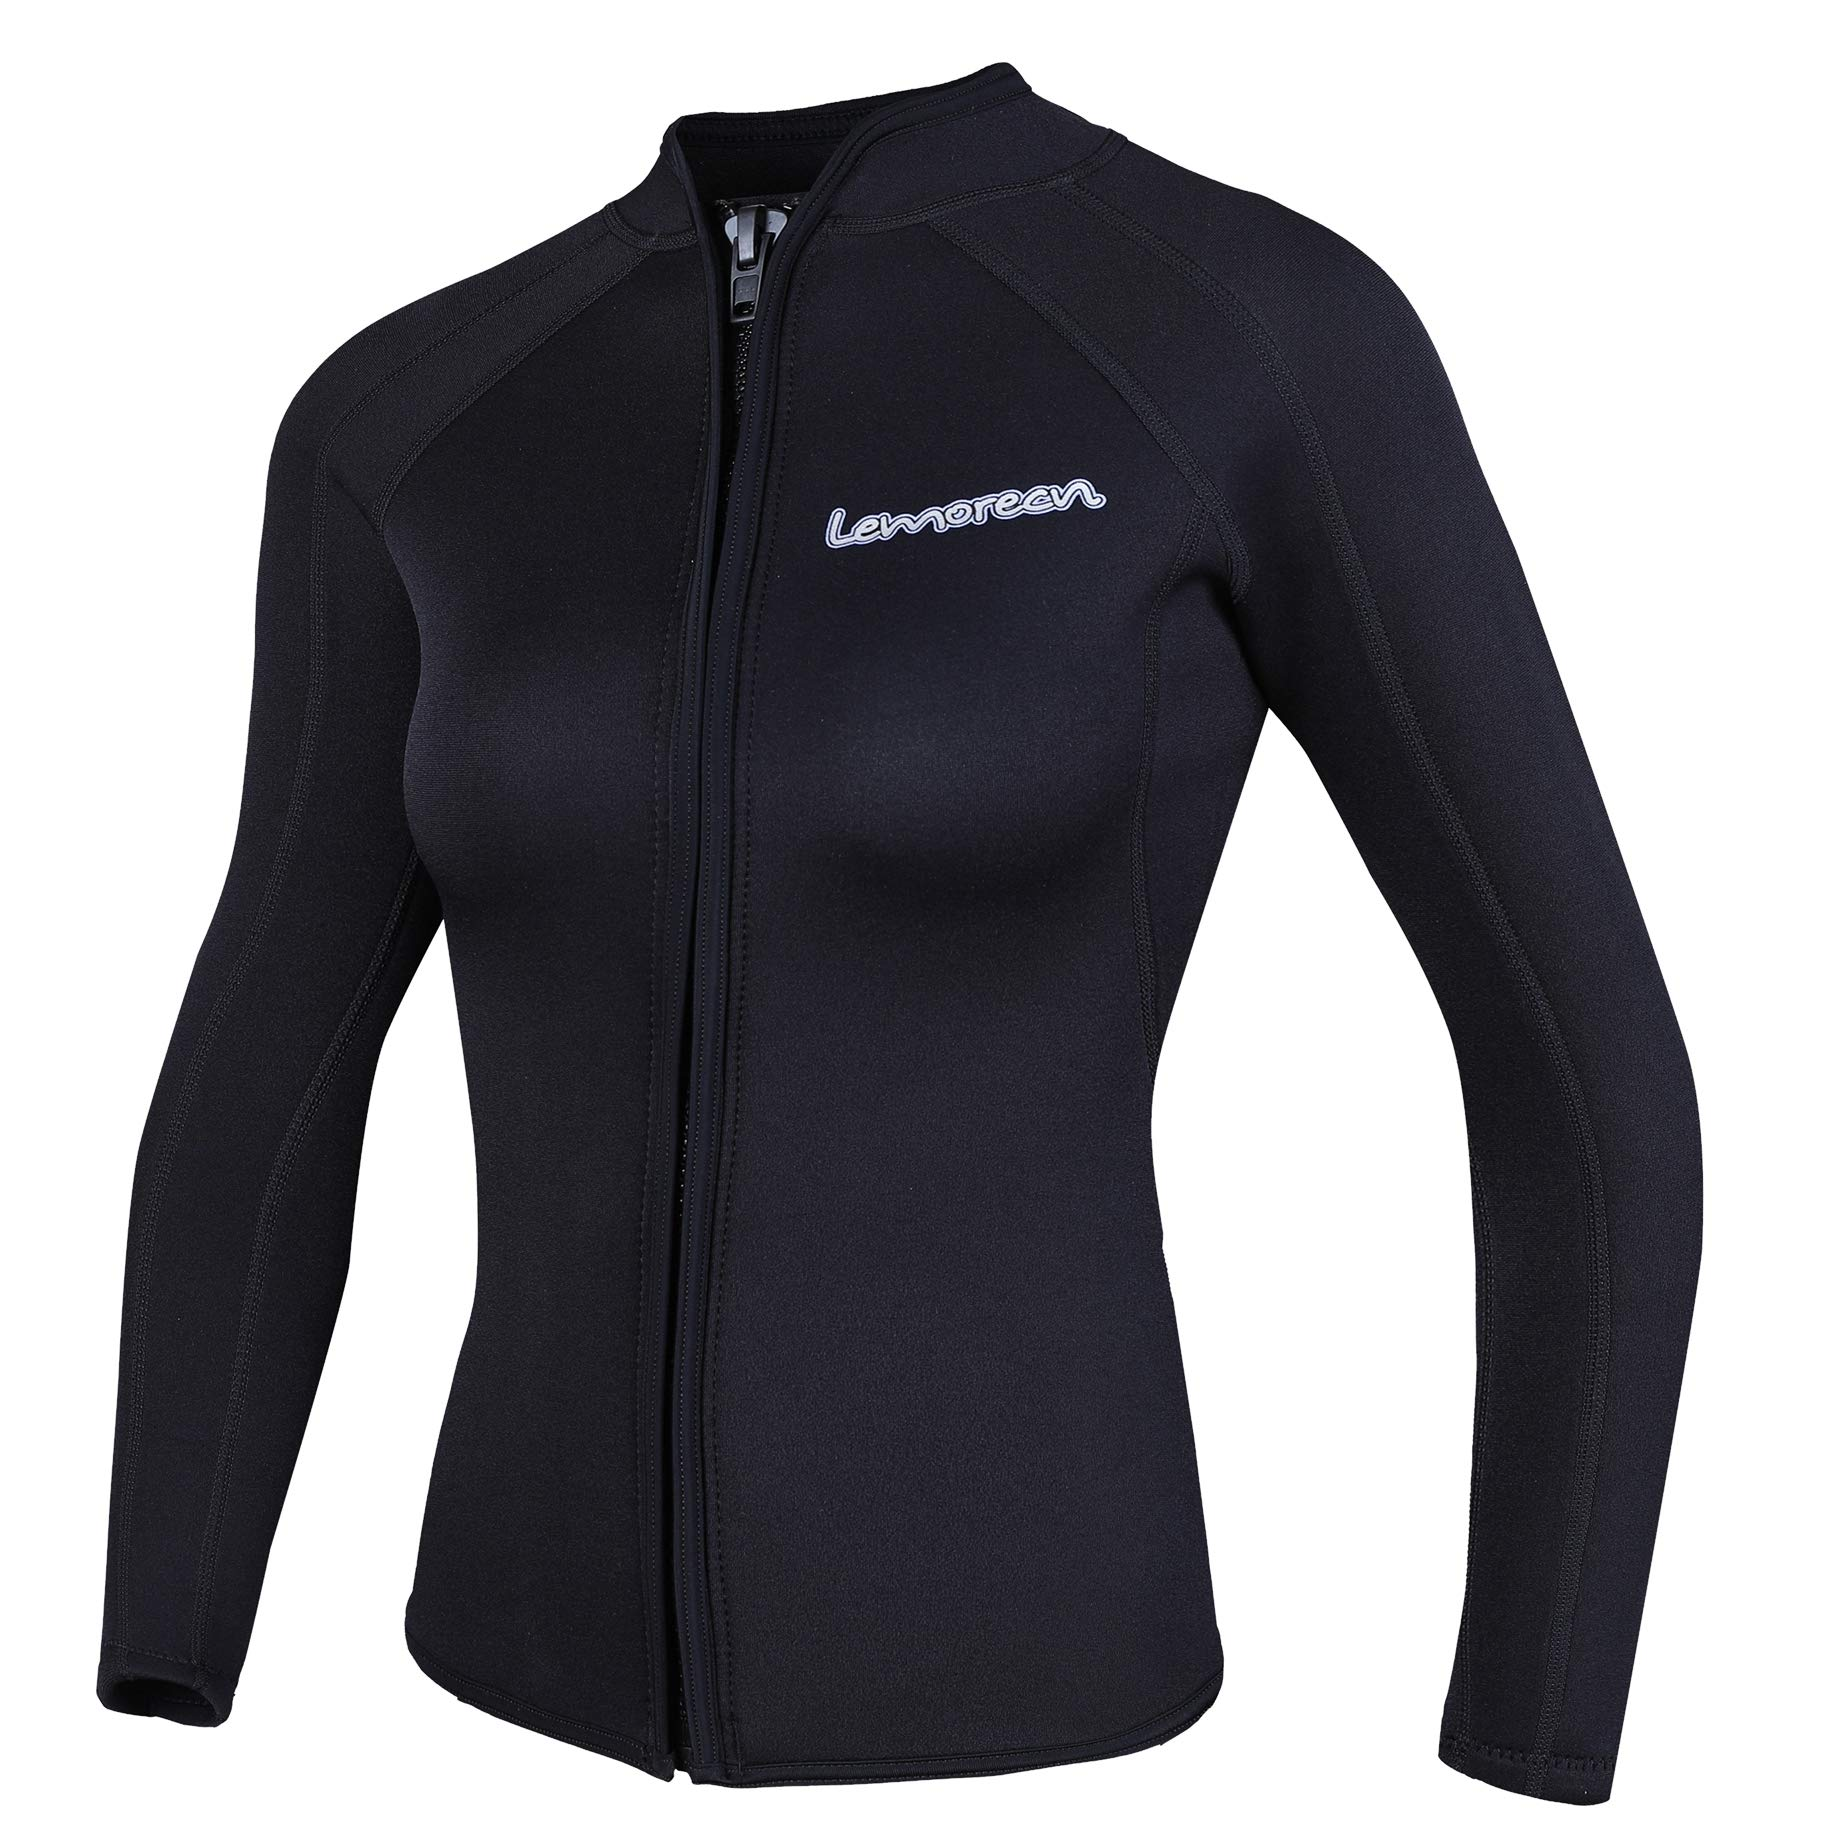 Lemorecn Women's 3mm Wetsuits Jacket Long Sleeve Neoprene Wetsuits Top (2041black4) by Lemorecn